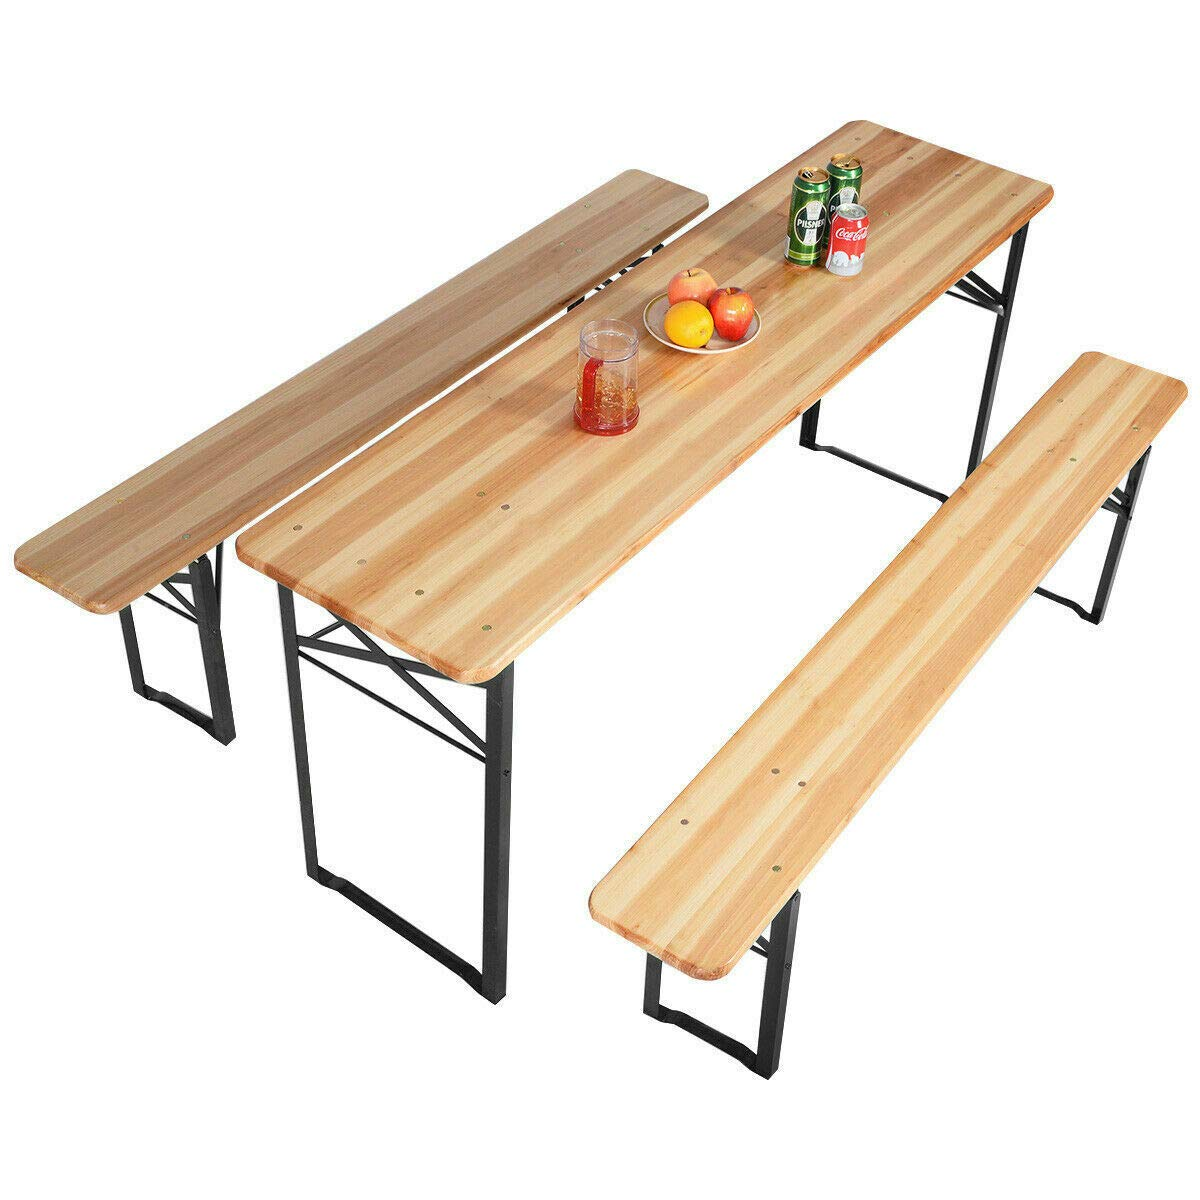 Alek...Shop Family Outdoor Picnic Sets Table Bench Dining Set Wood Courtyard Terrace Field Beer Party Folding Wooden Top Patio